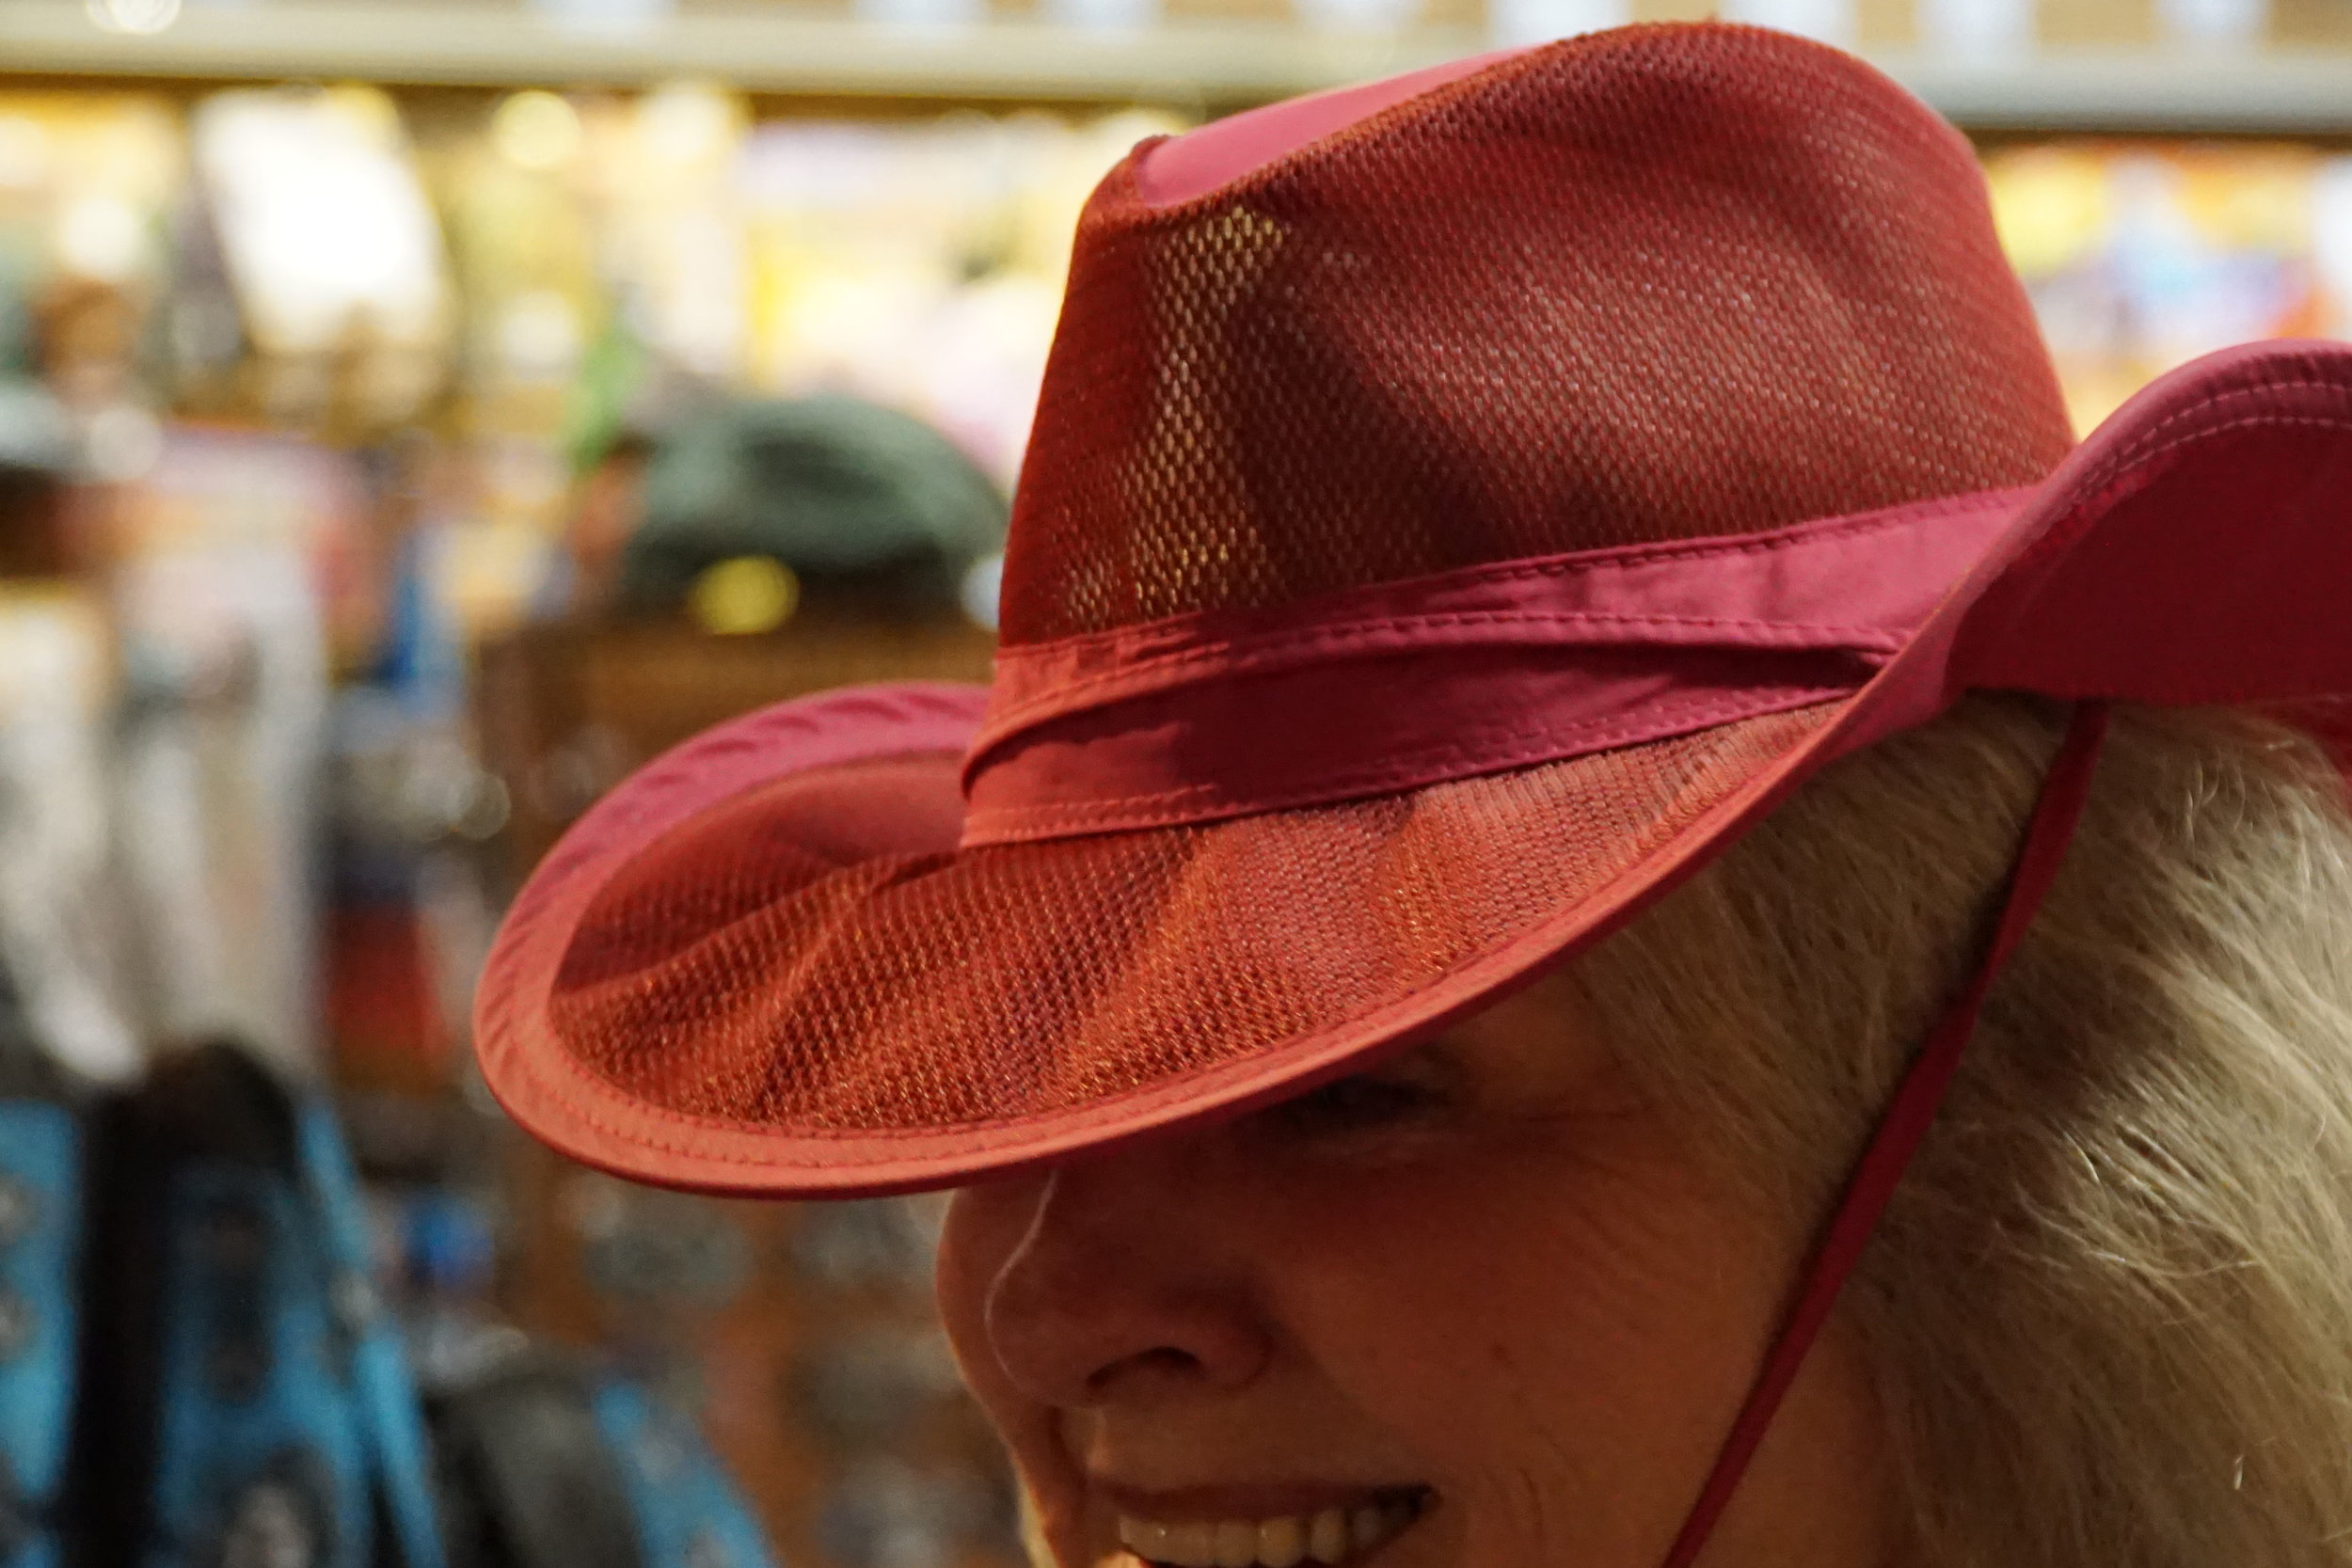 20170727 - Lookout-mountain-red-hat.JPG